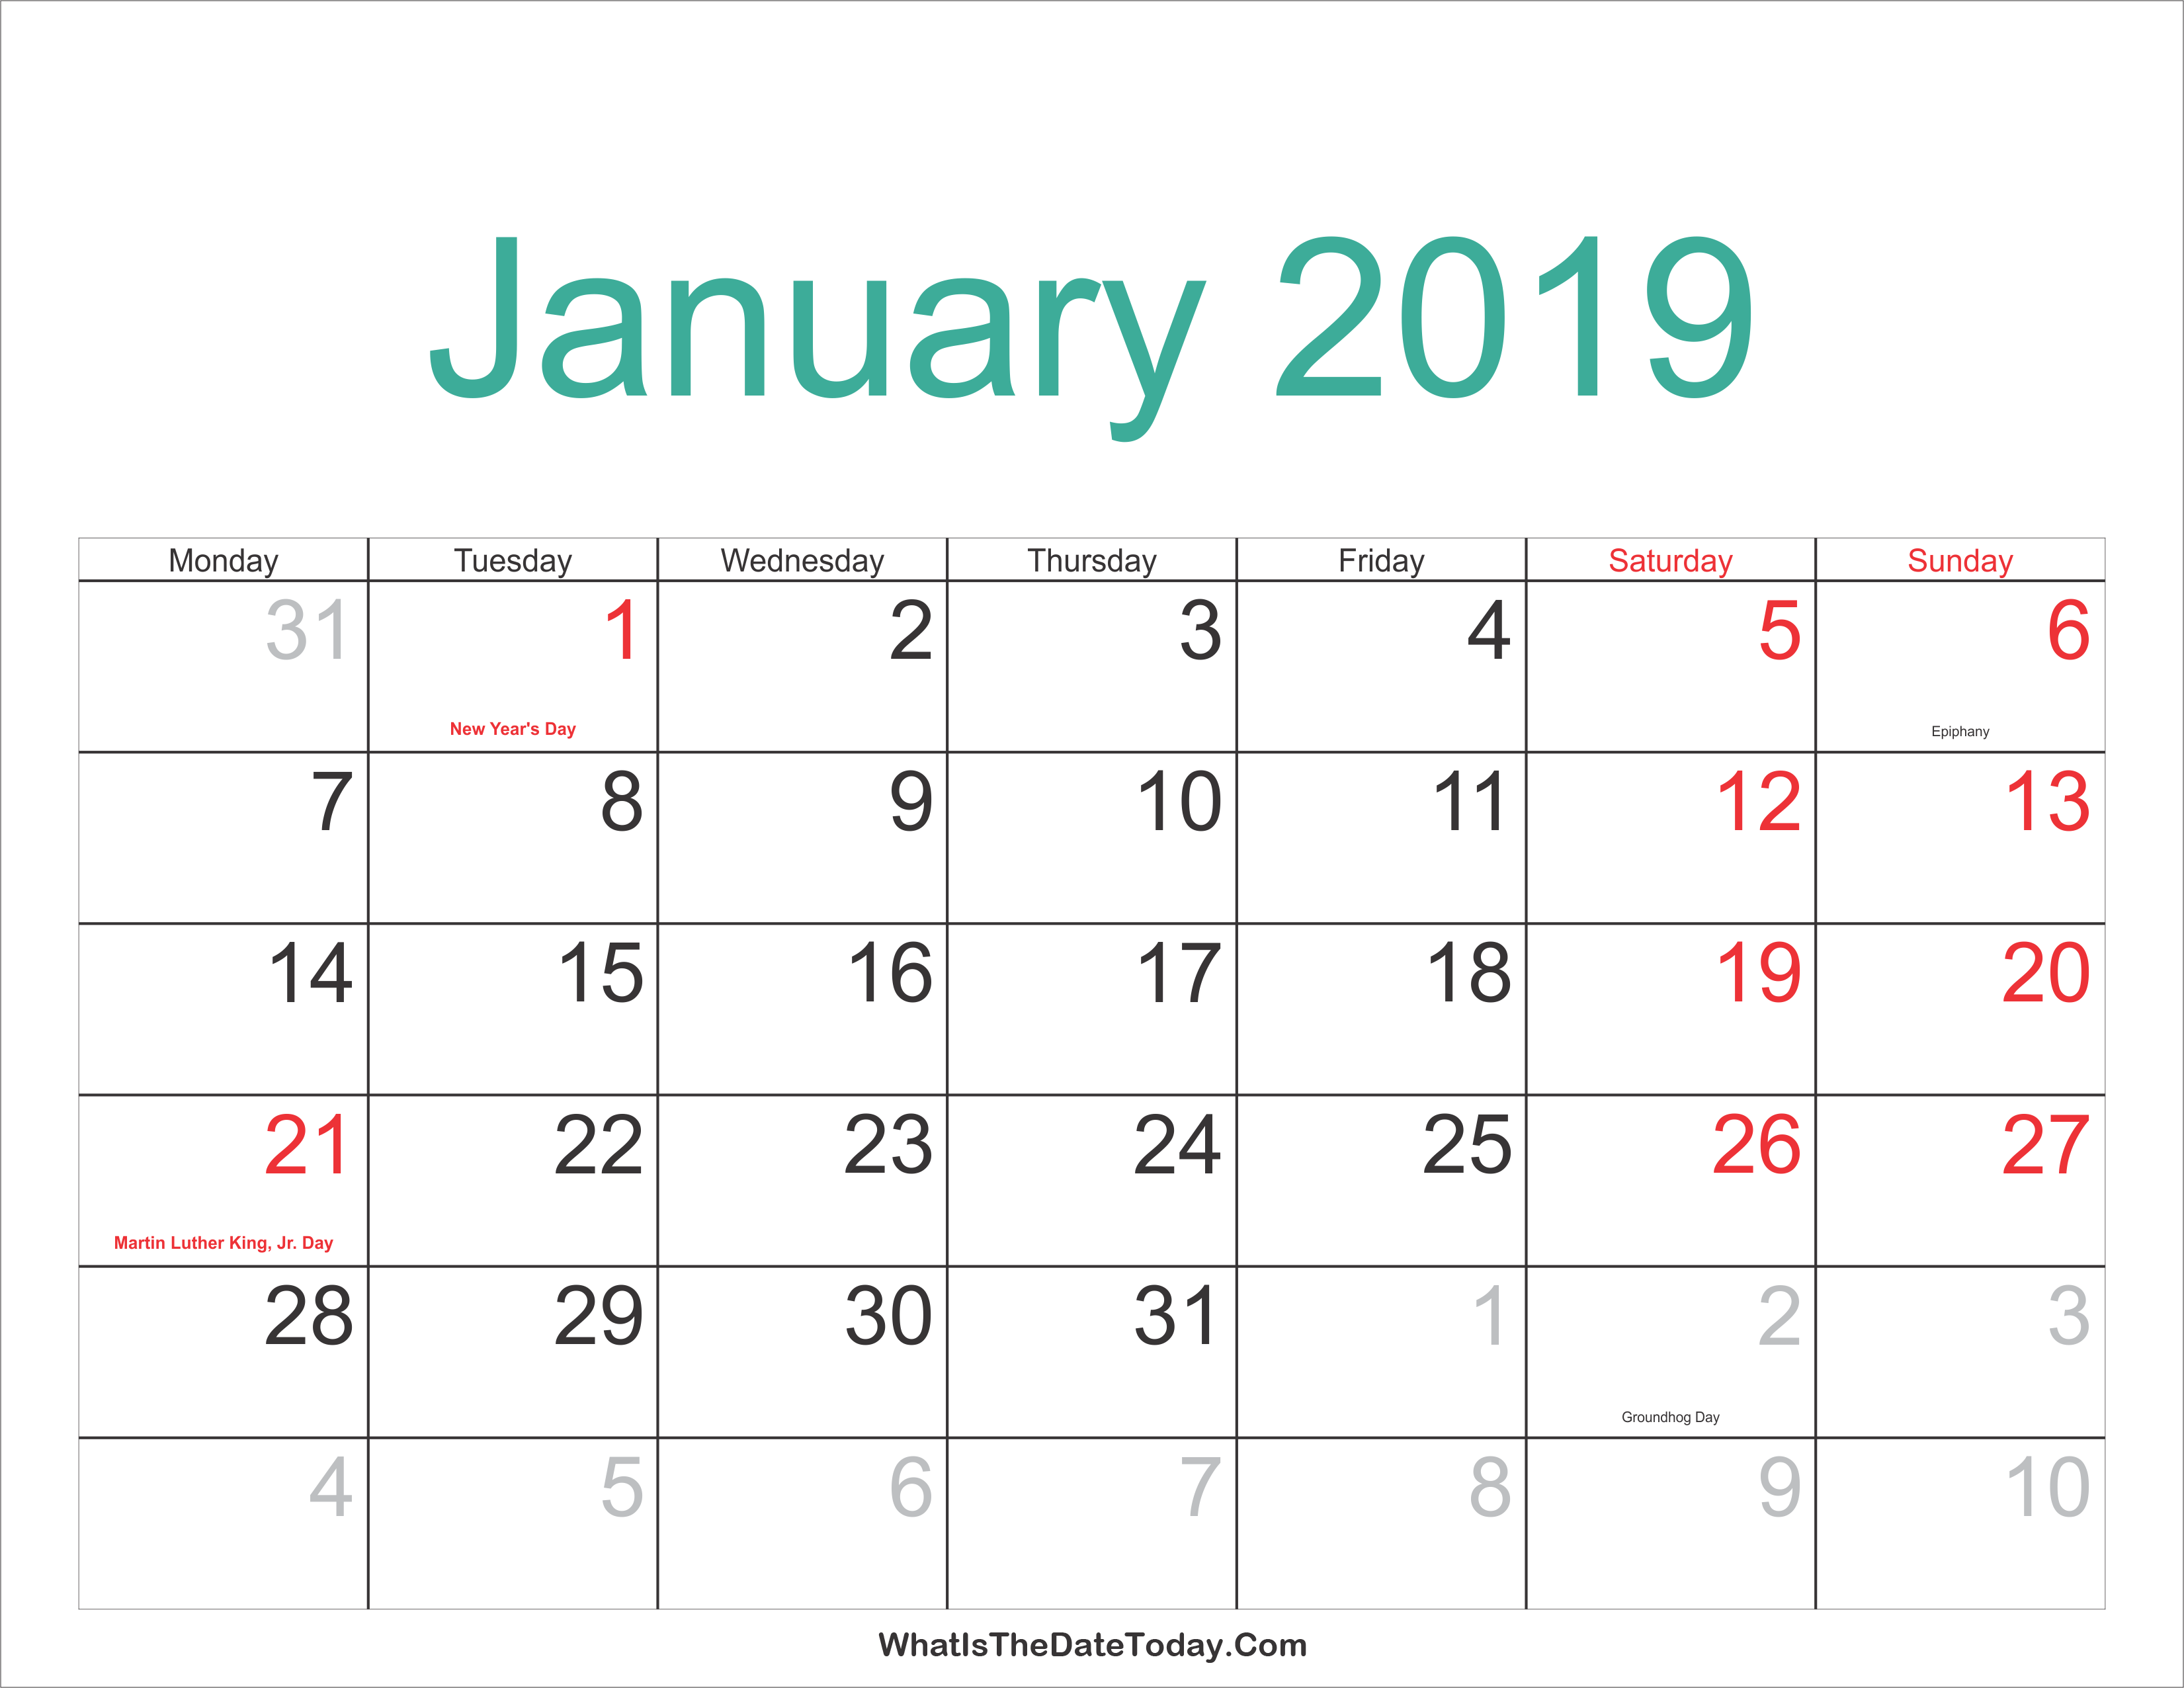 january 2019 calendar printable with holidays